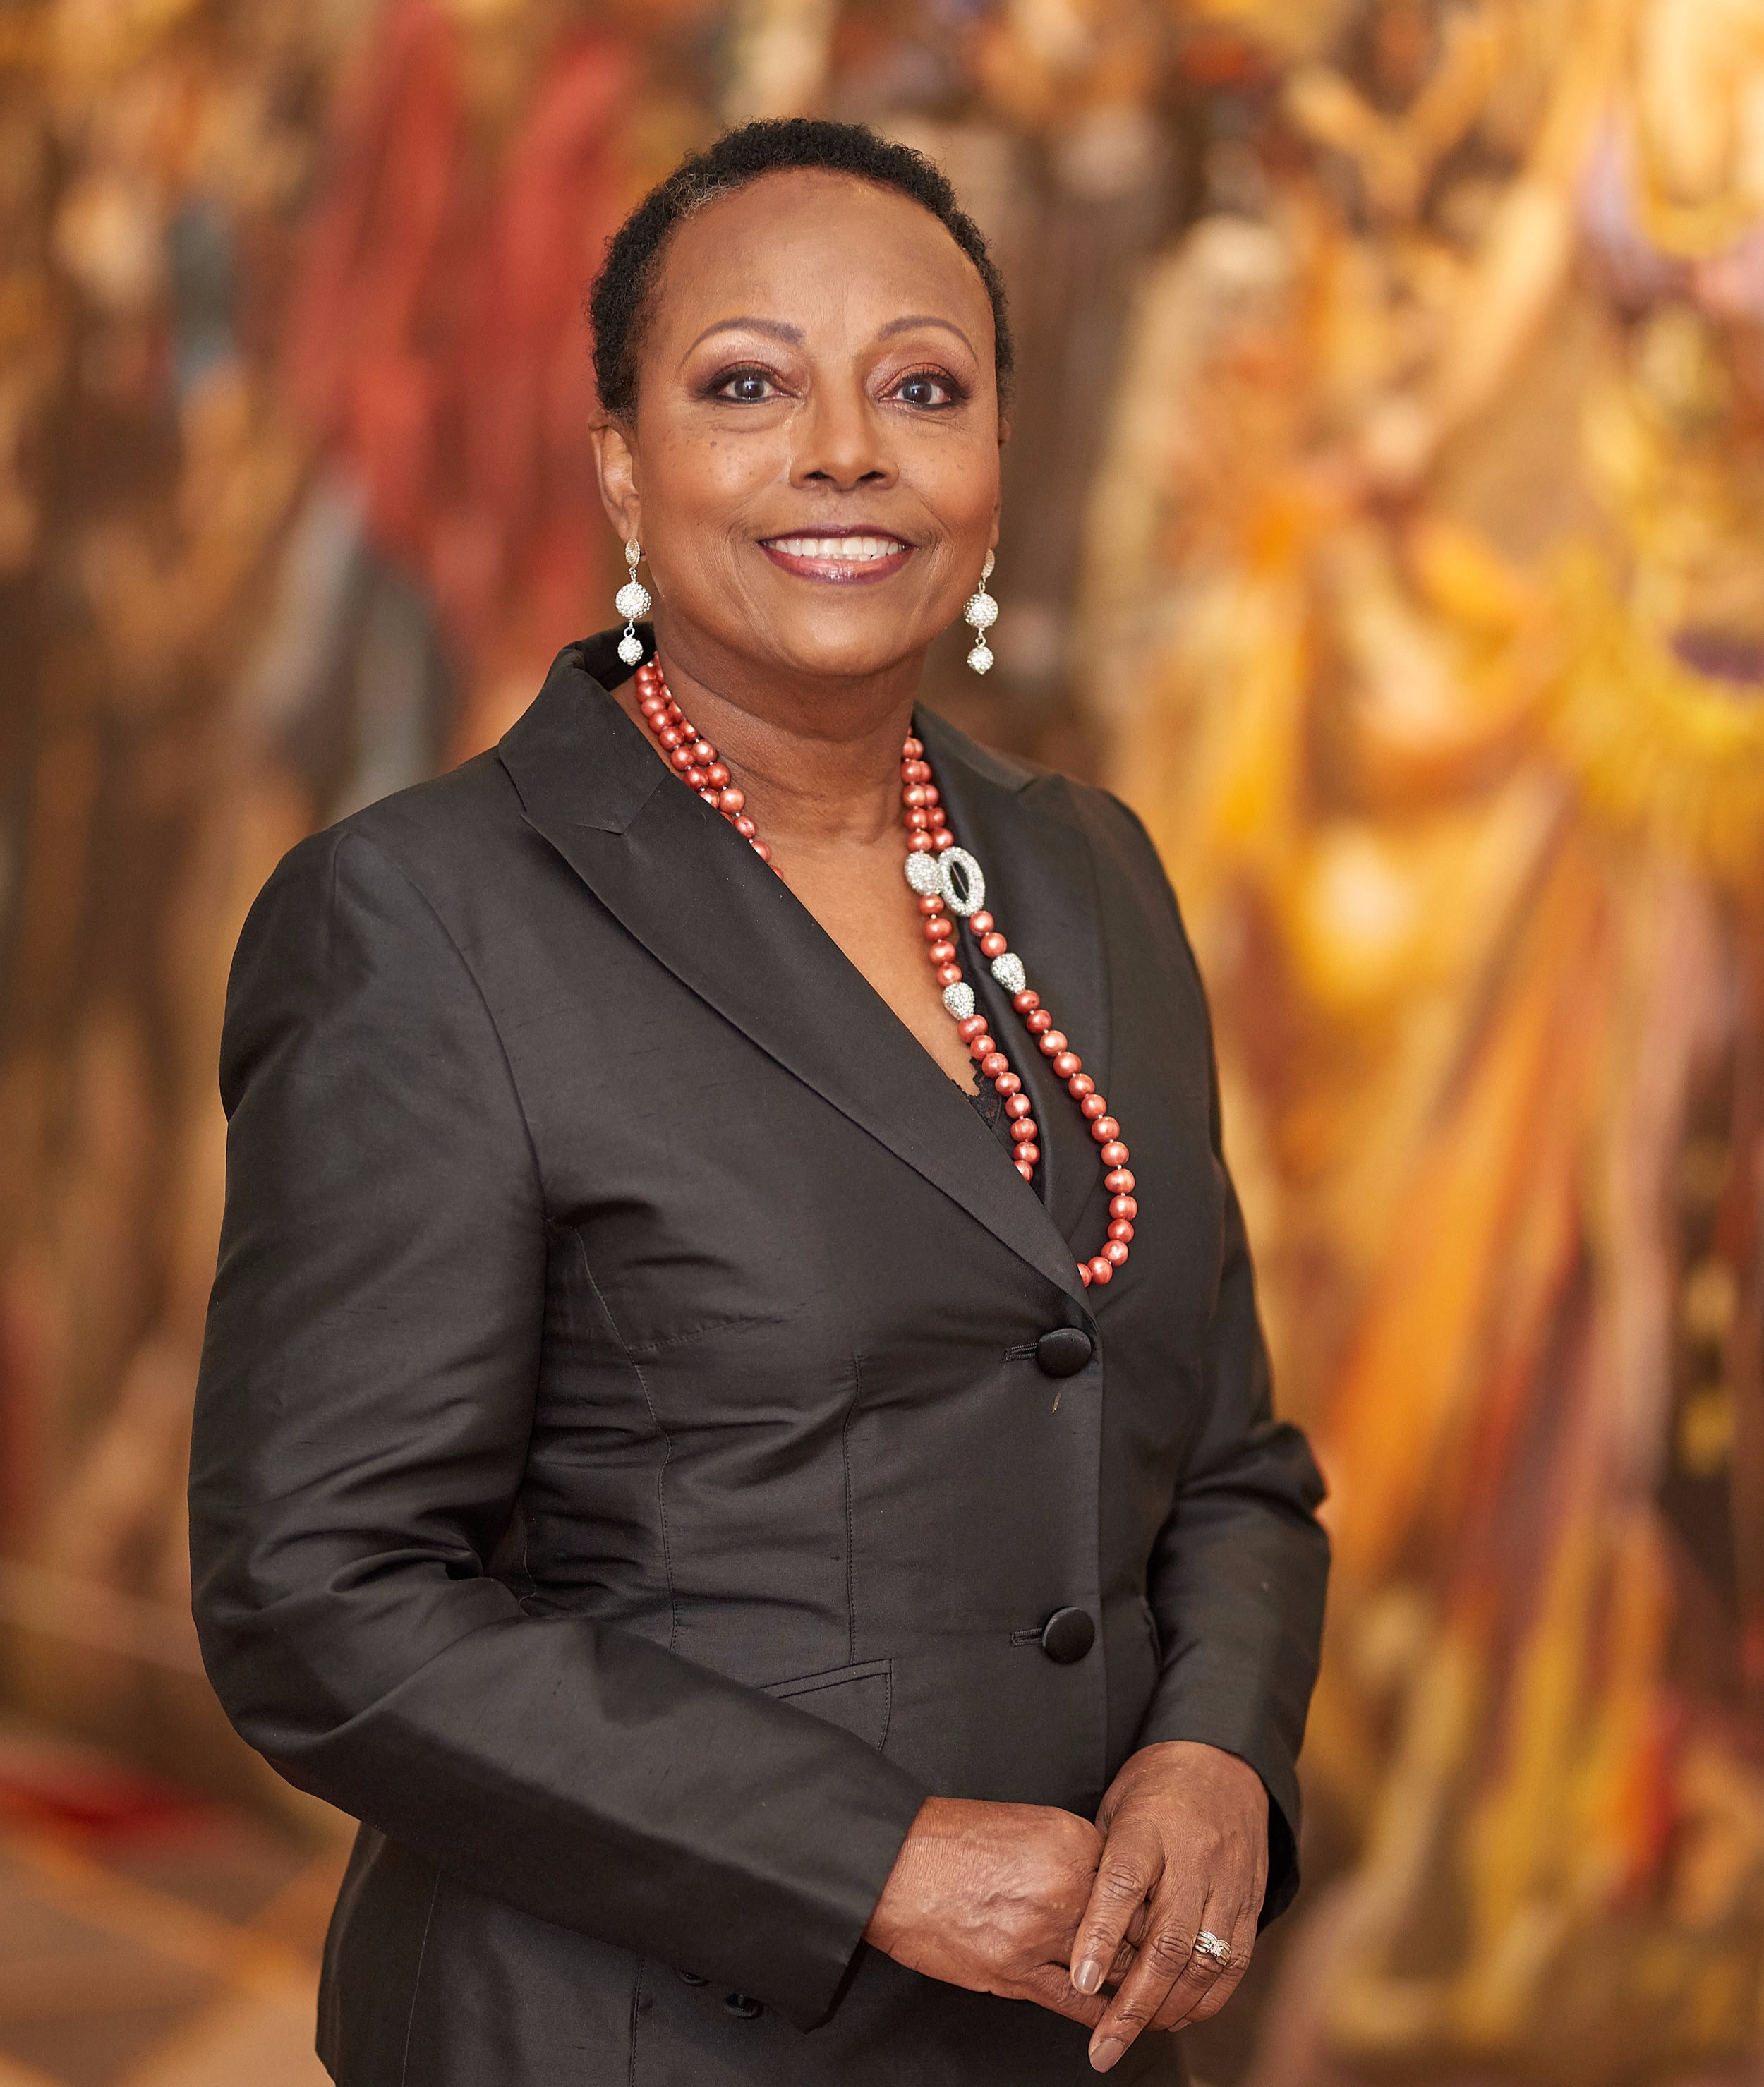 Betty J. Hines , business strategist and founder/CEO of Women Elevating Women